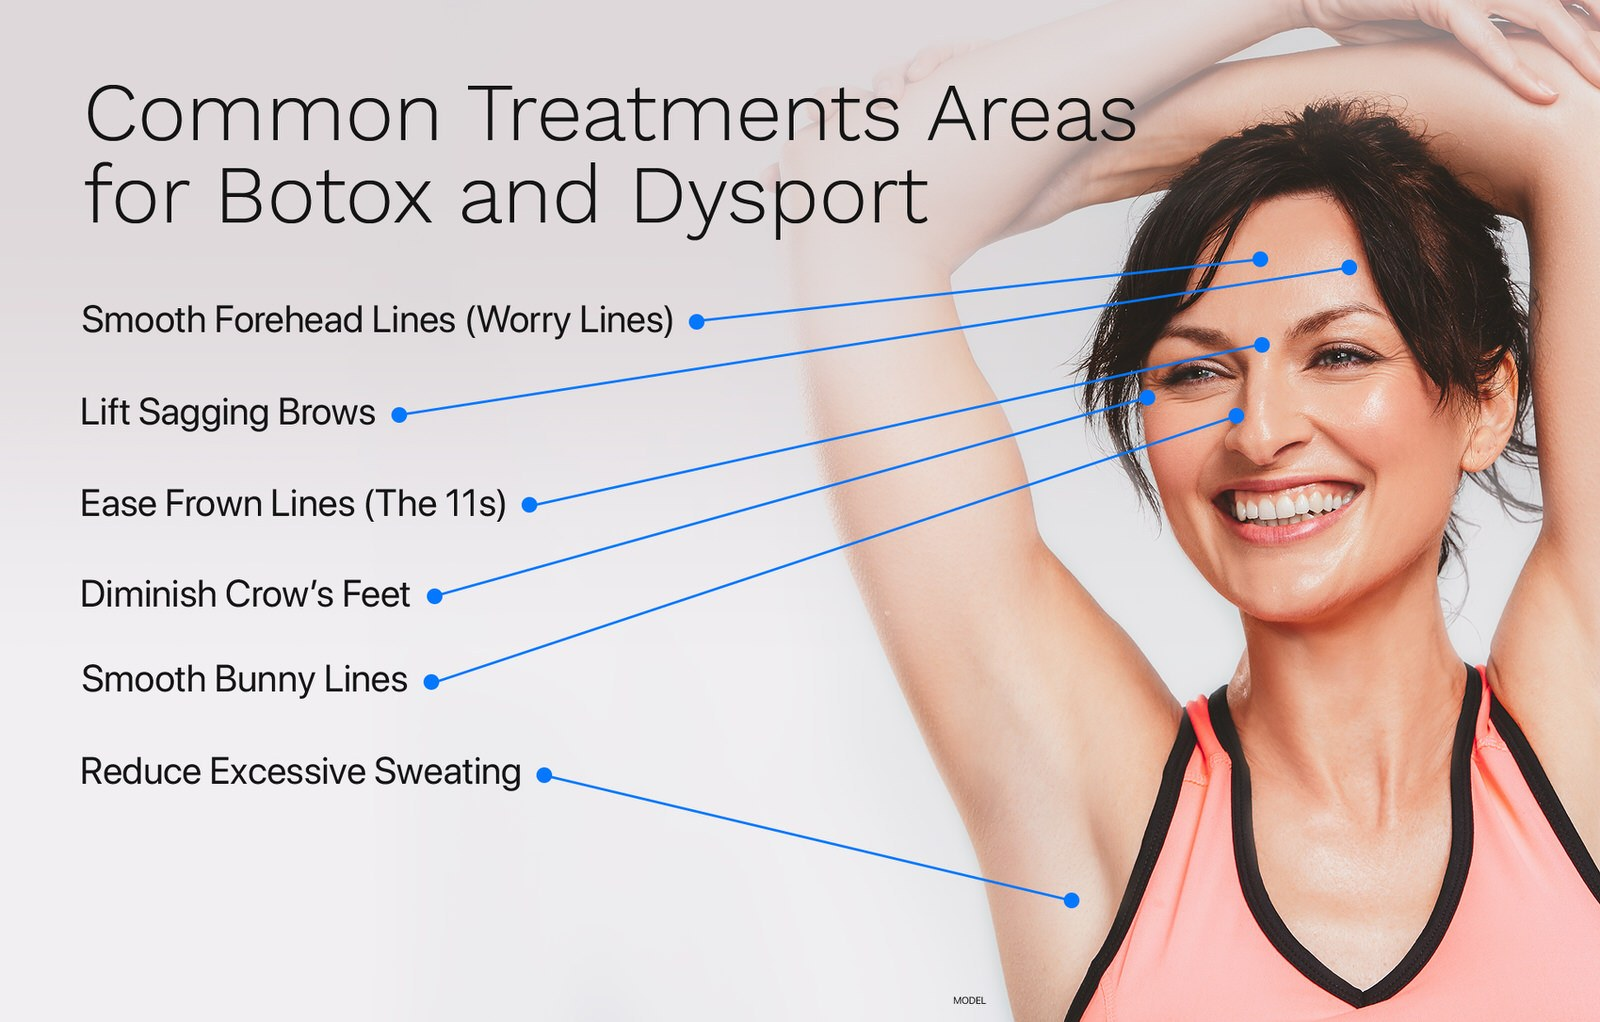 Treatment areas with botox and dysport for worry lines, sagging brows, crow's feet, bunny lines, and reduce sweating